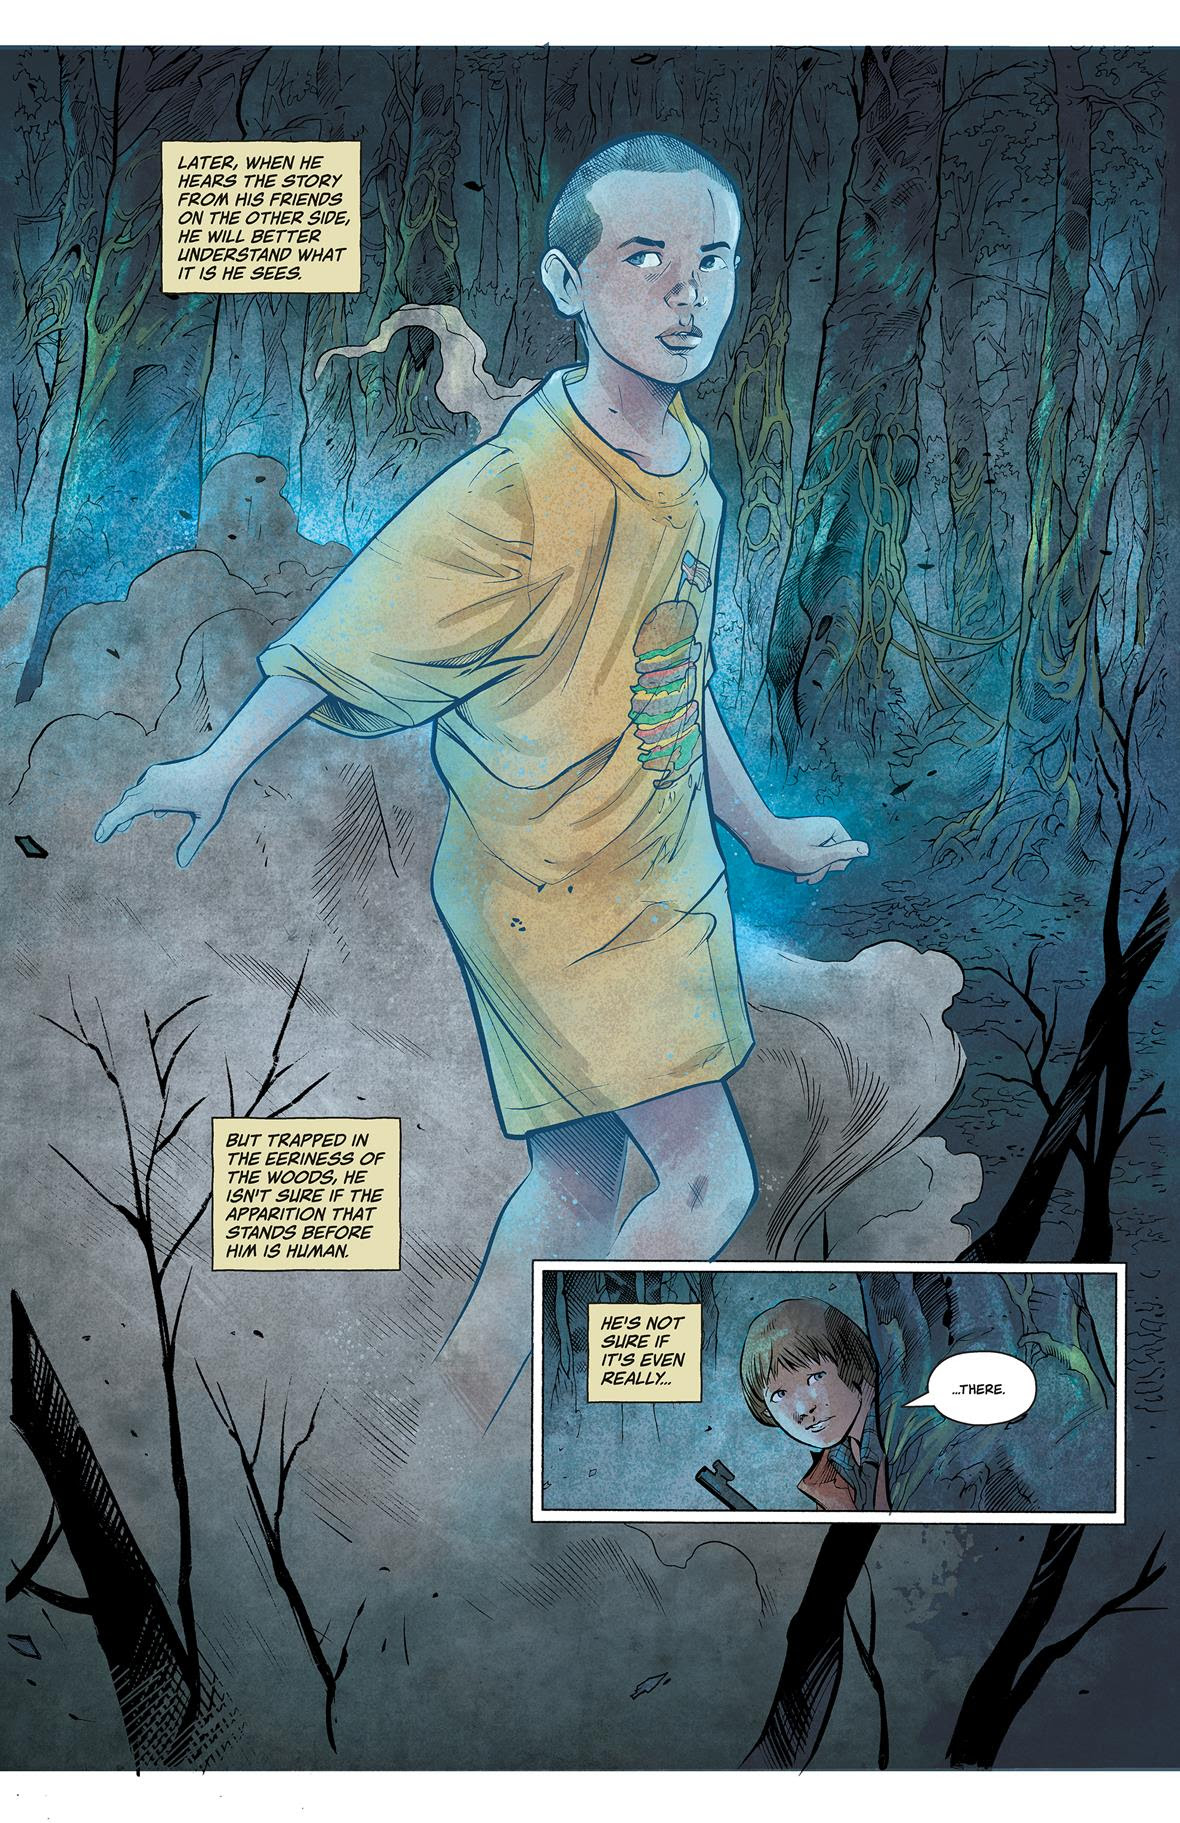 Stranger Things #1 advance review: Like a good campfire story you won't want to end